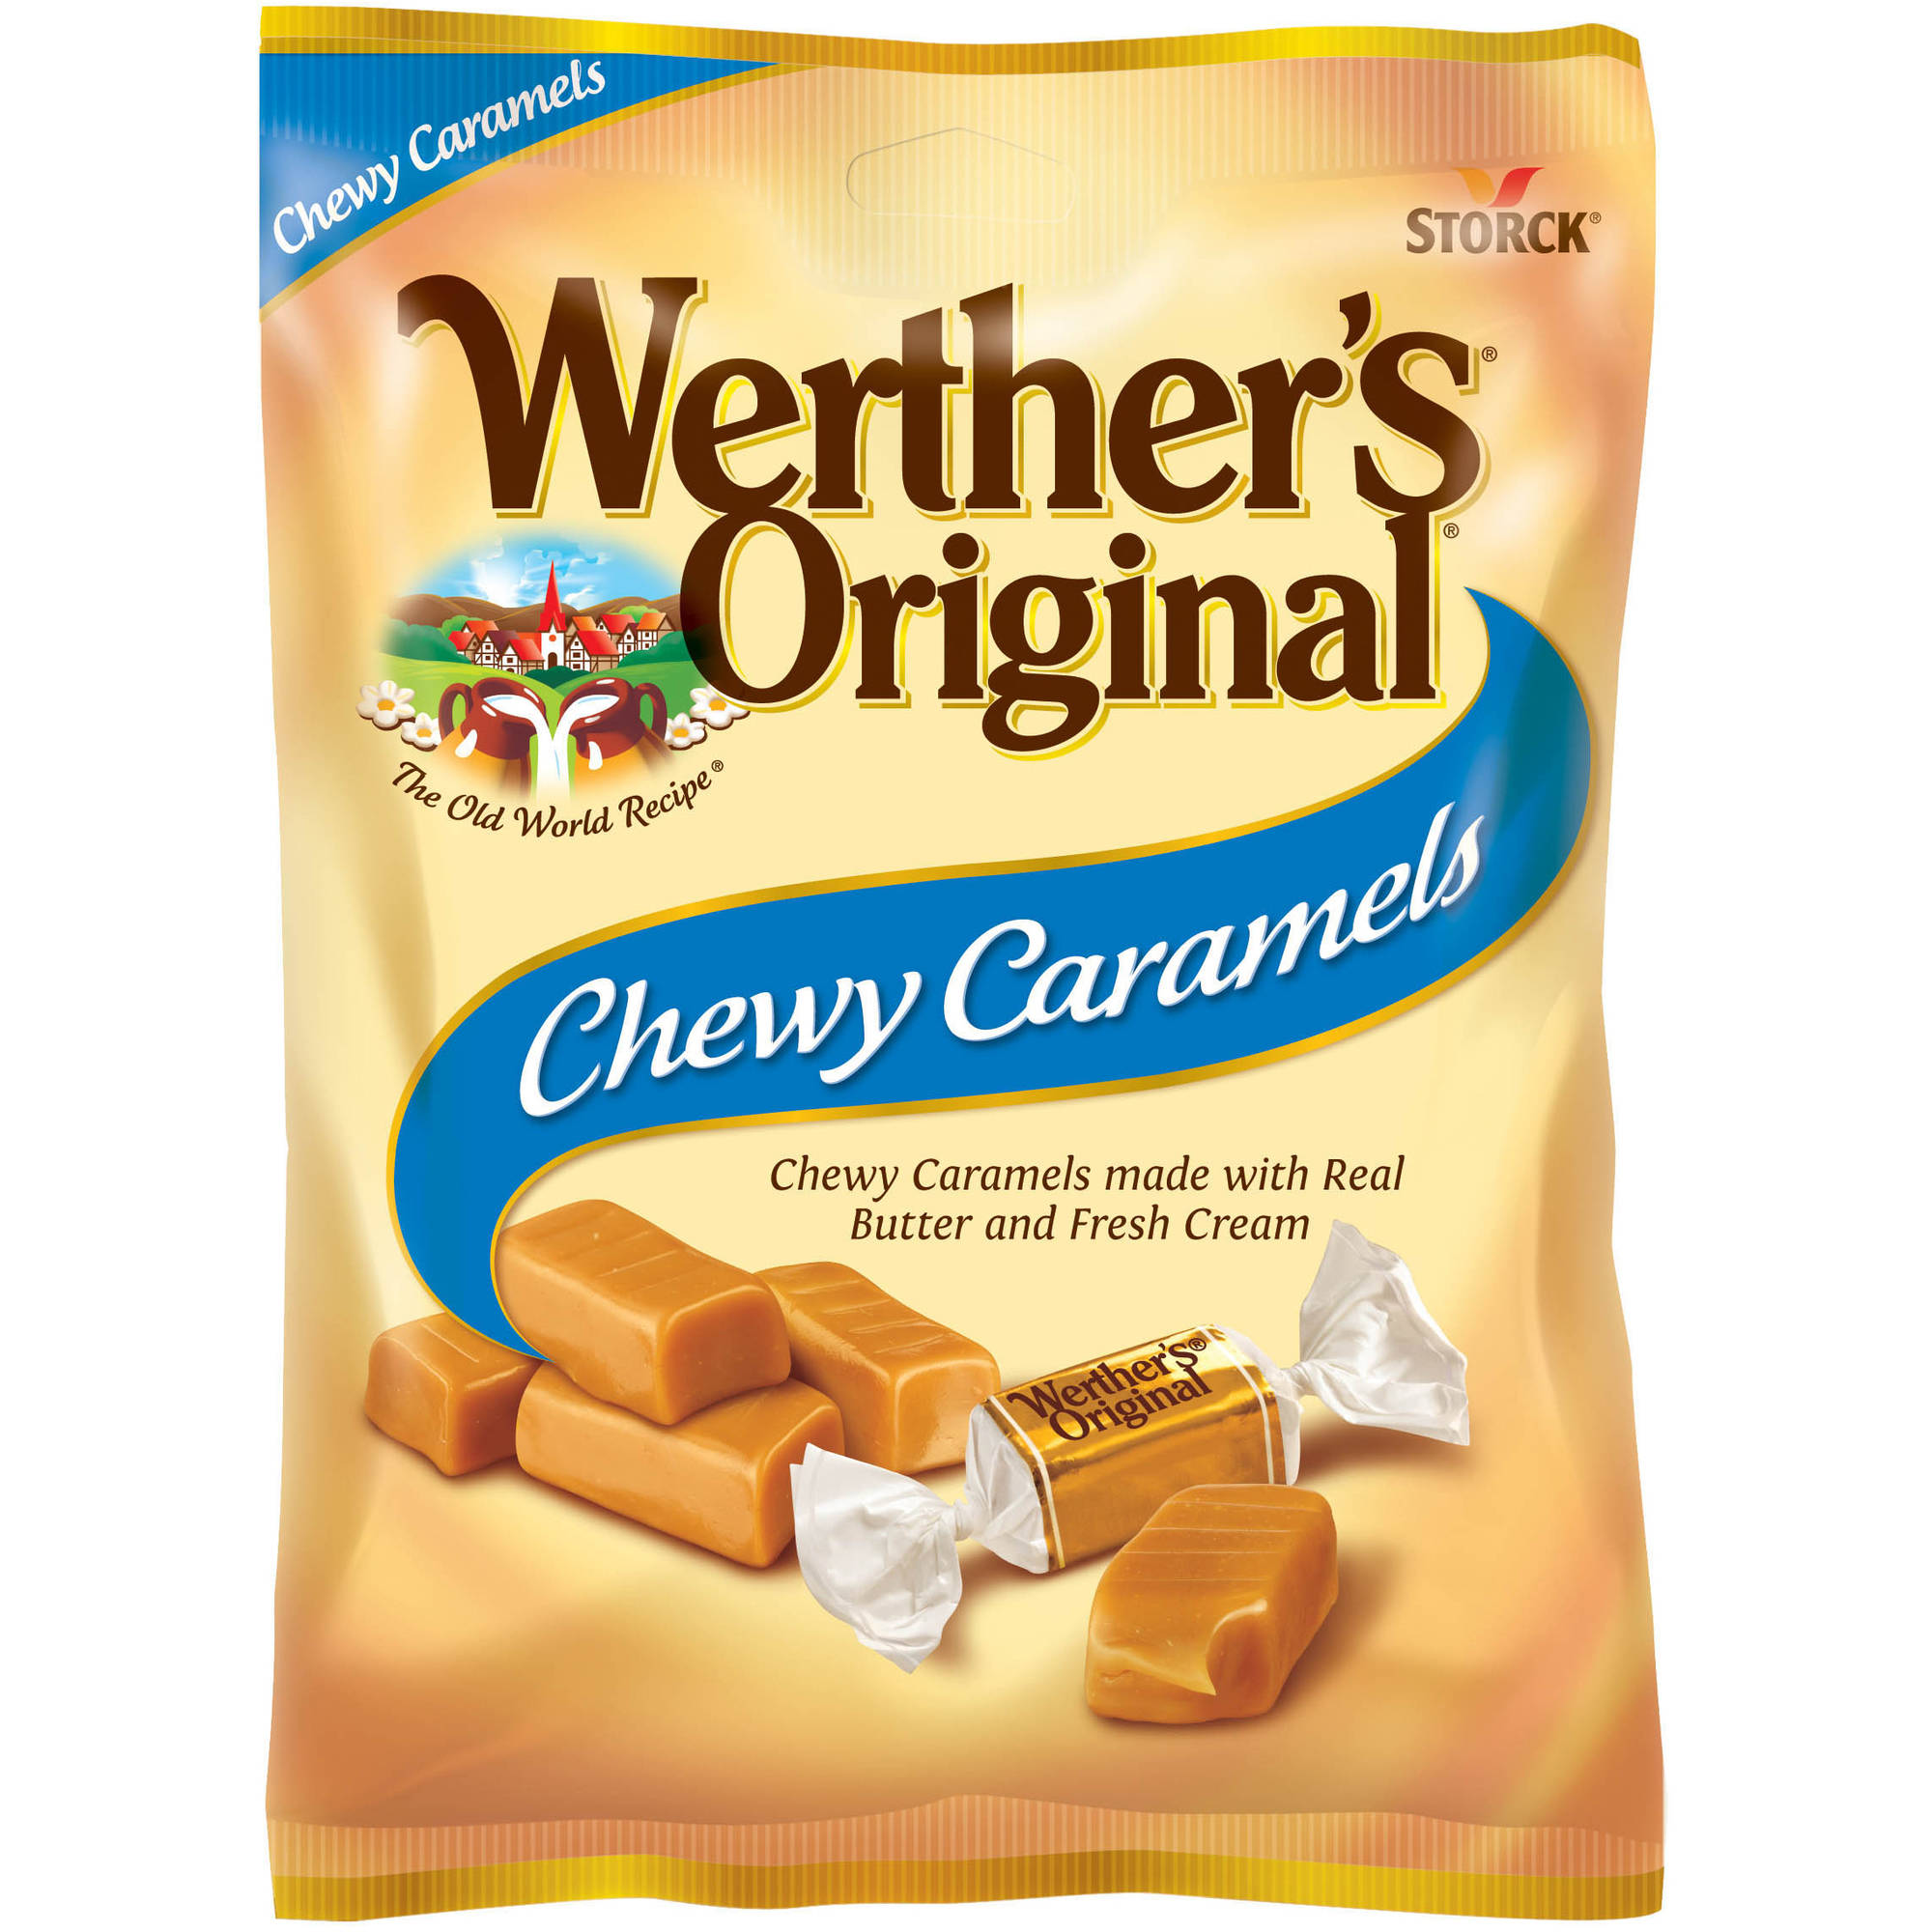 Werther's Original Chewy Caramels, 5 oz